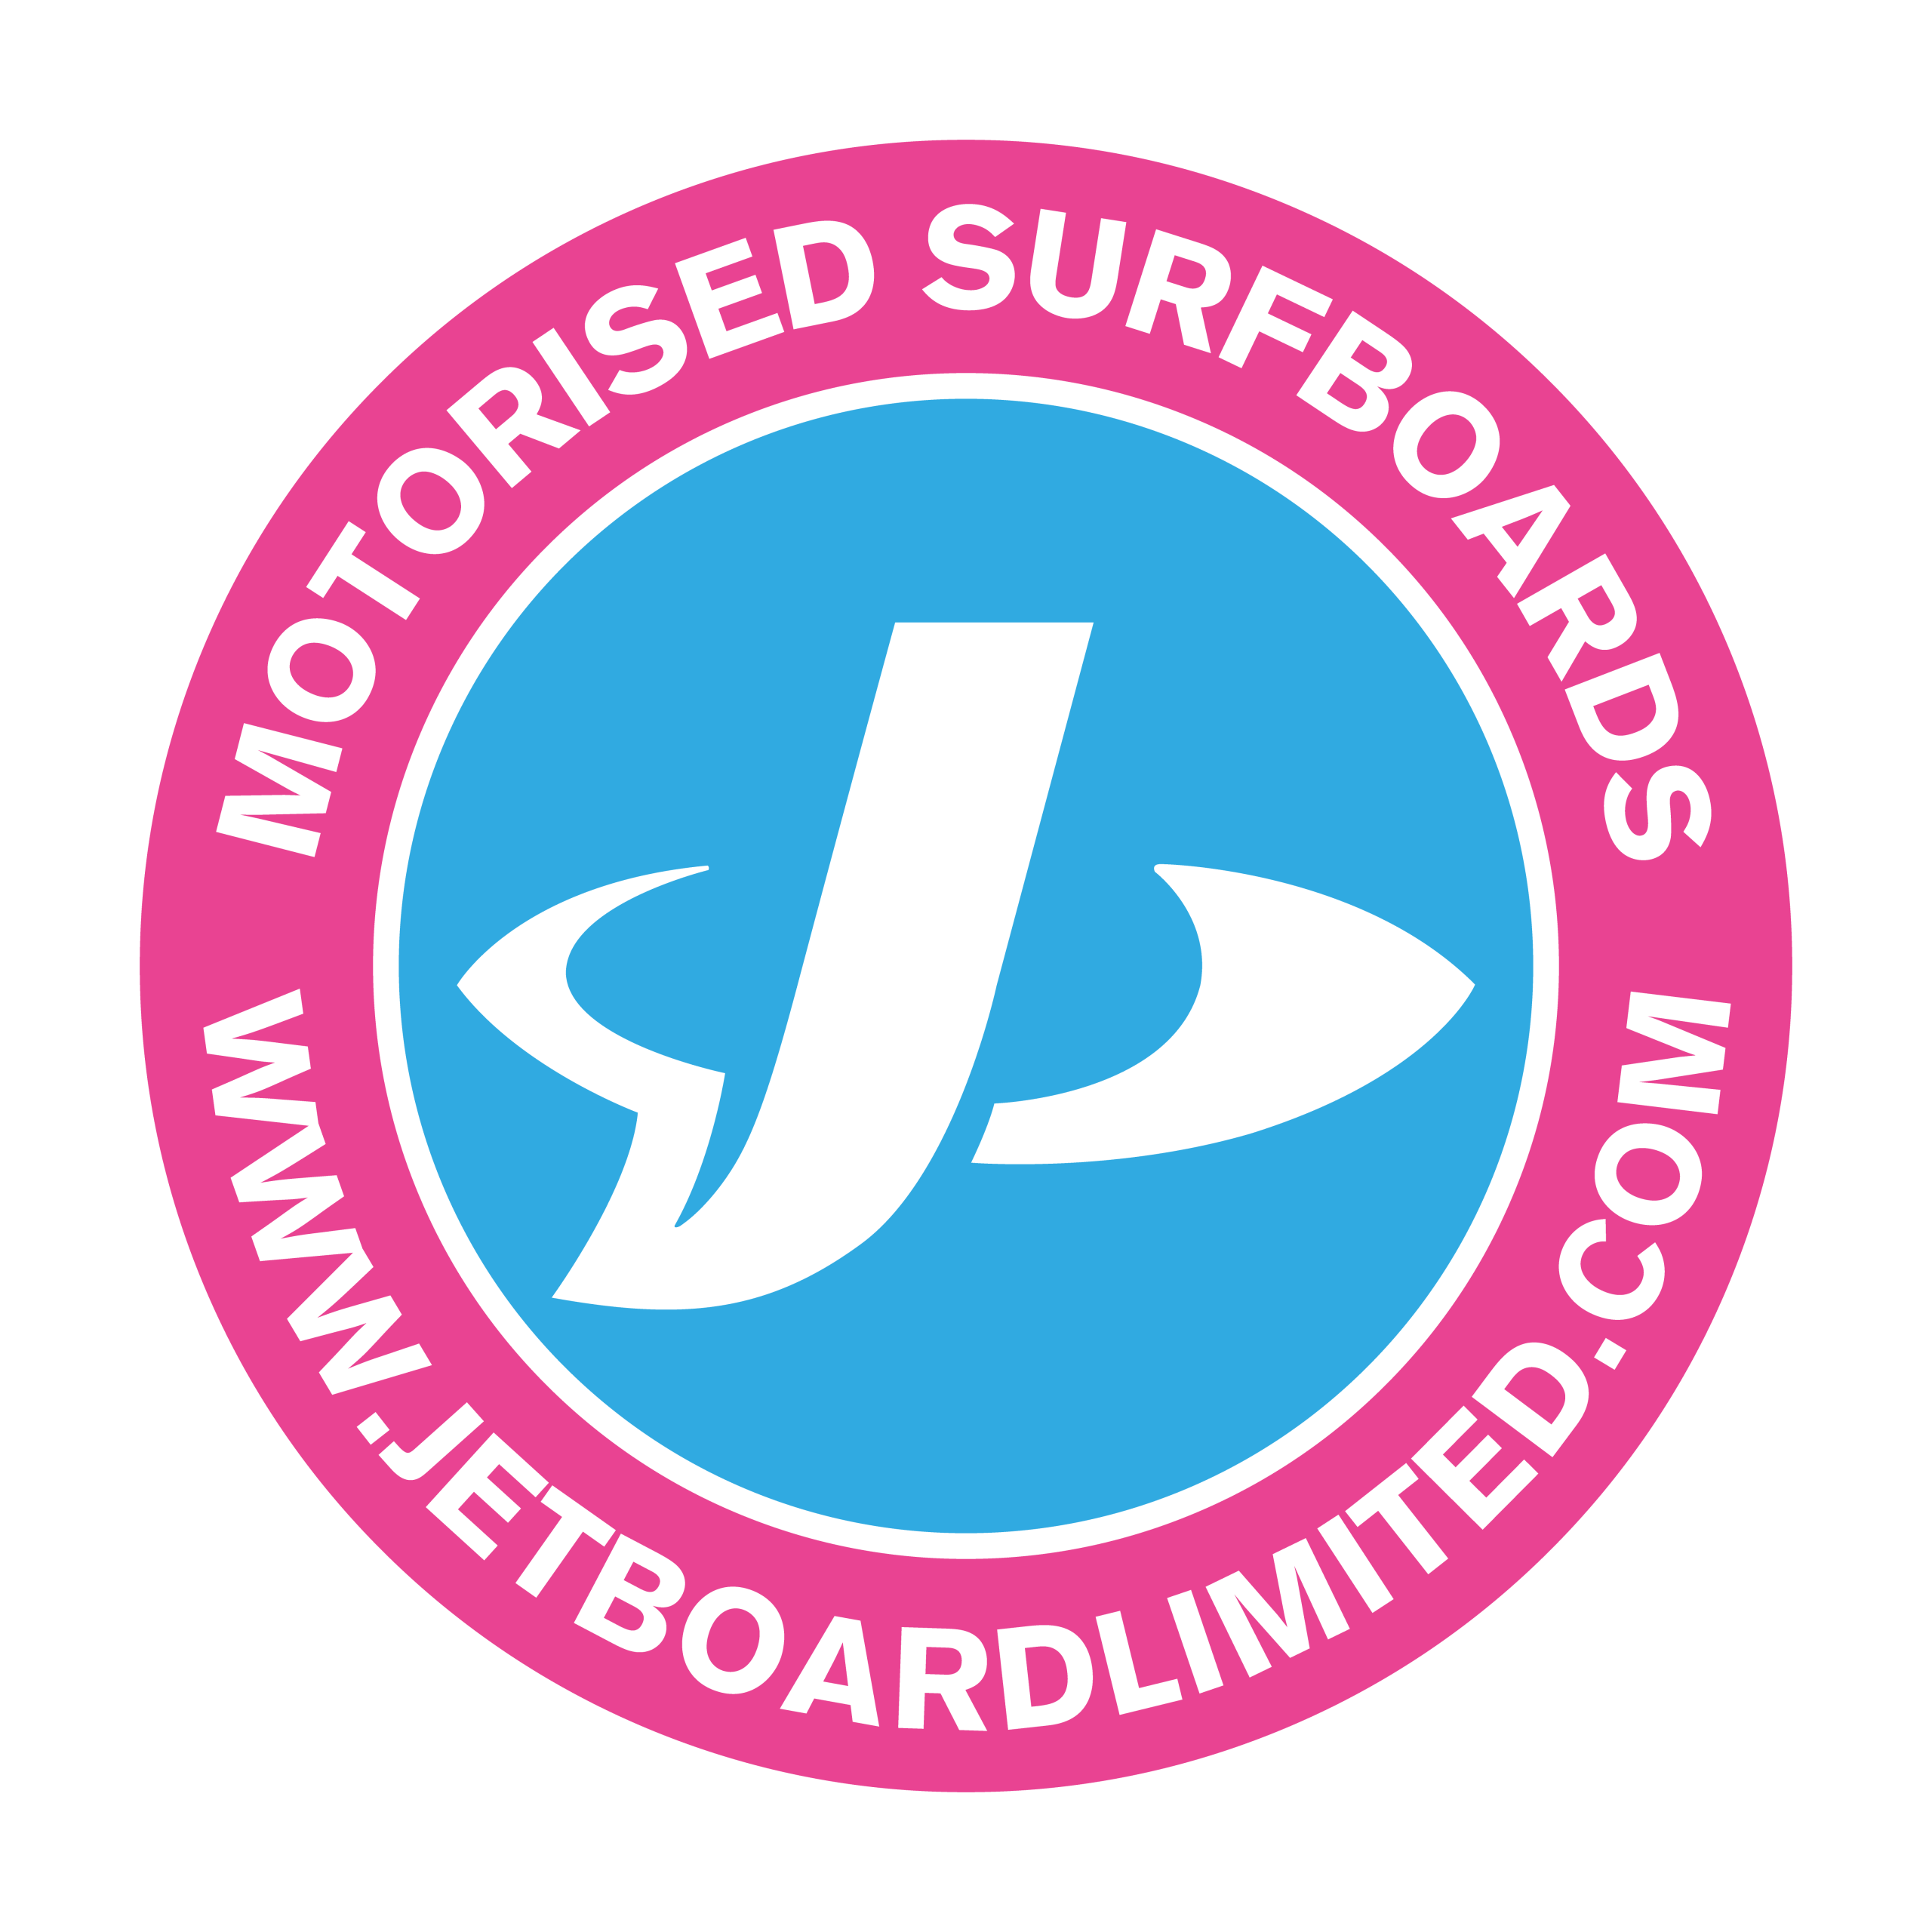 jet board limited logo